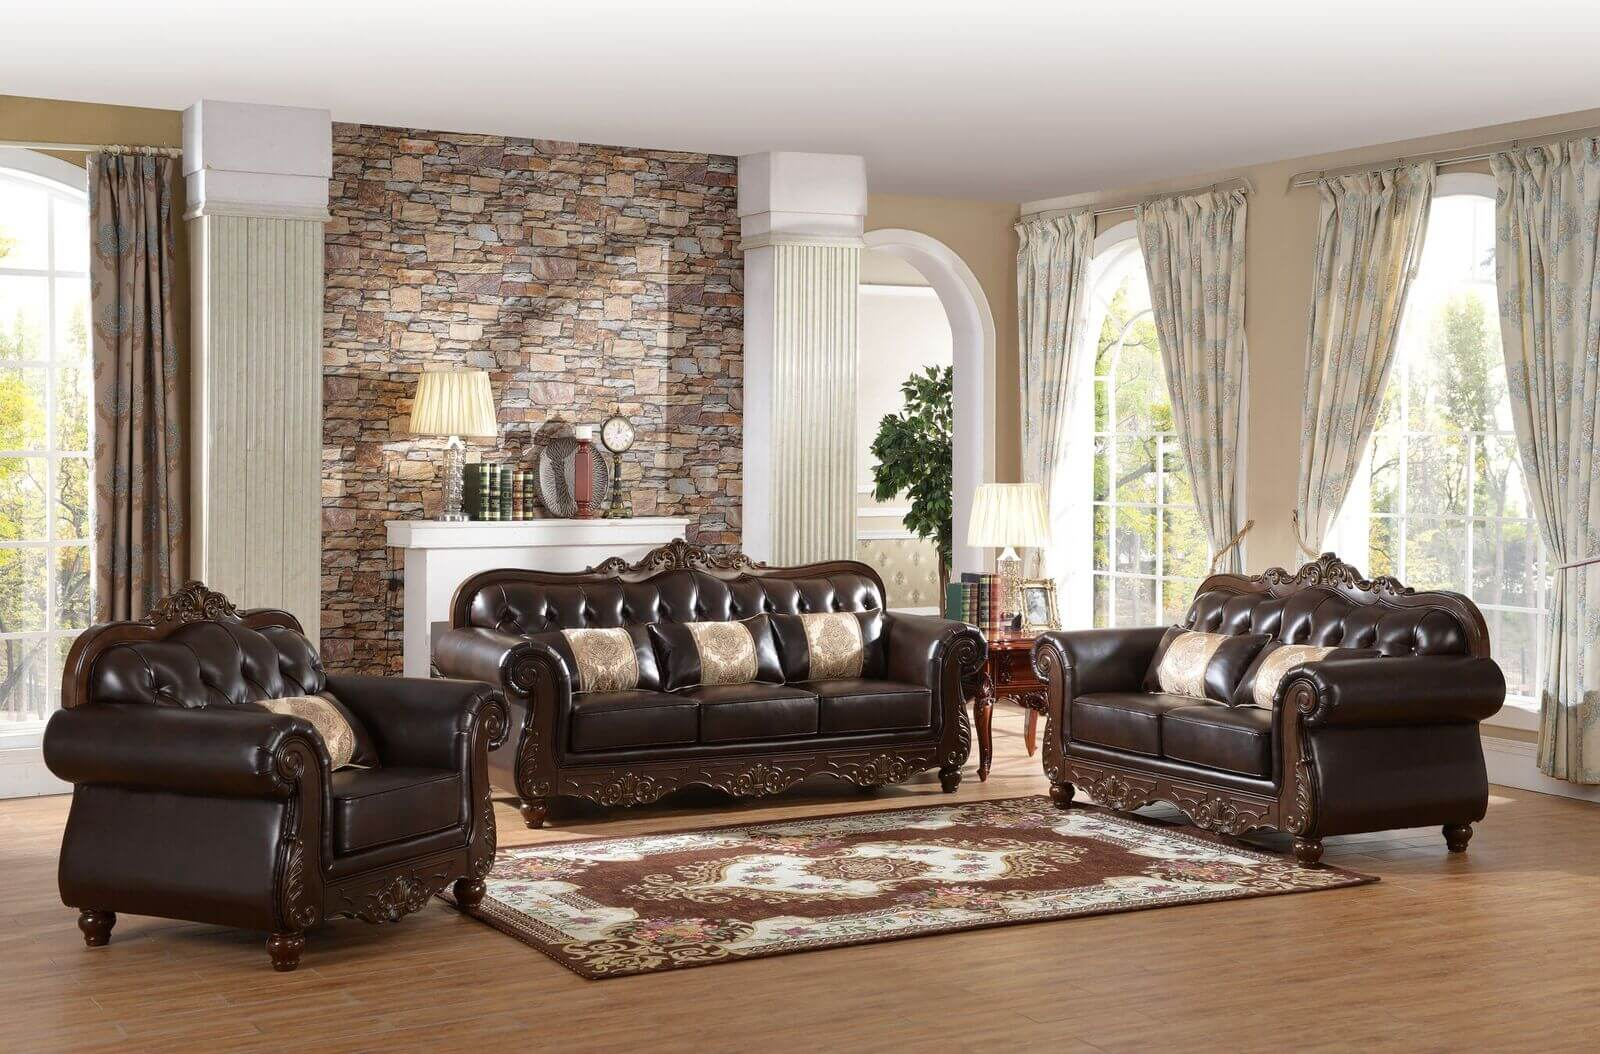 Mabel 3 Pc Living Room Set